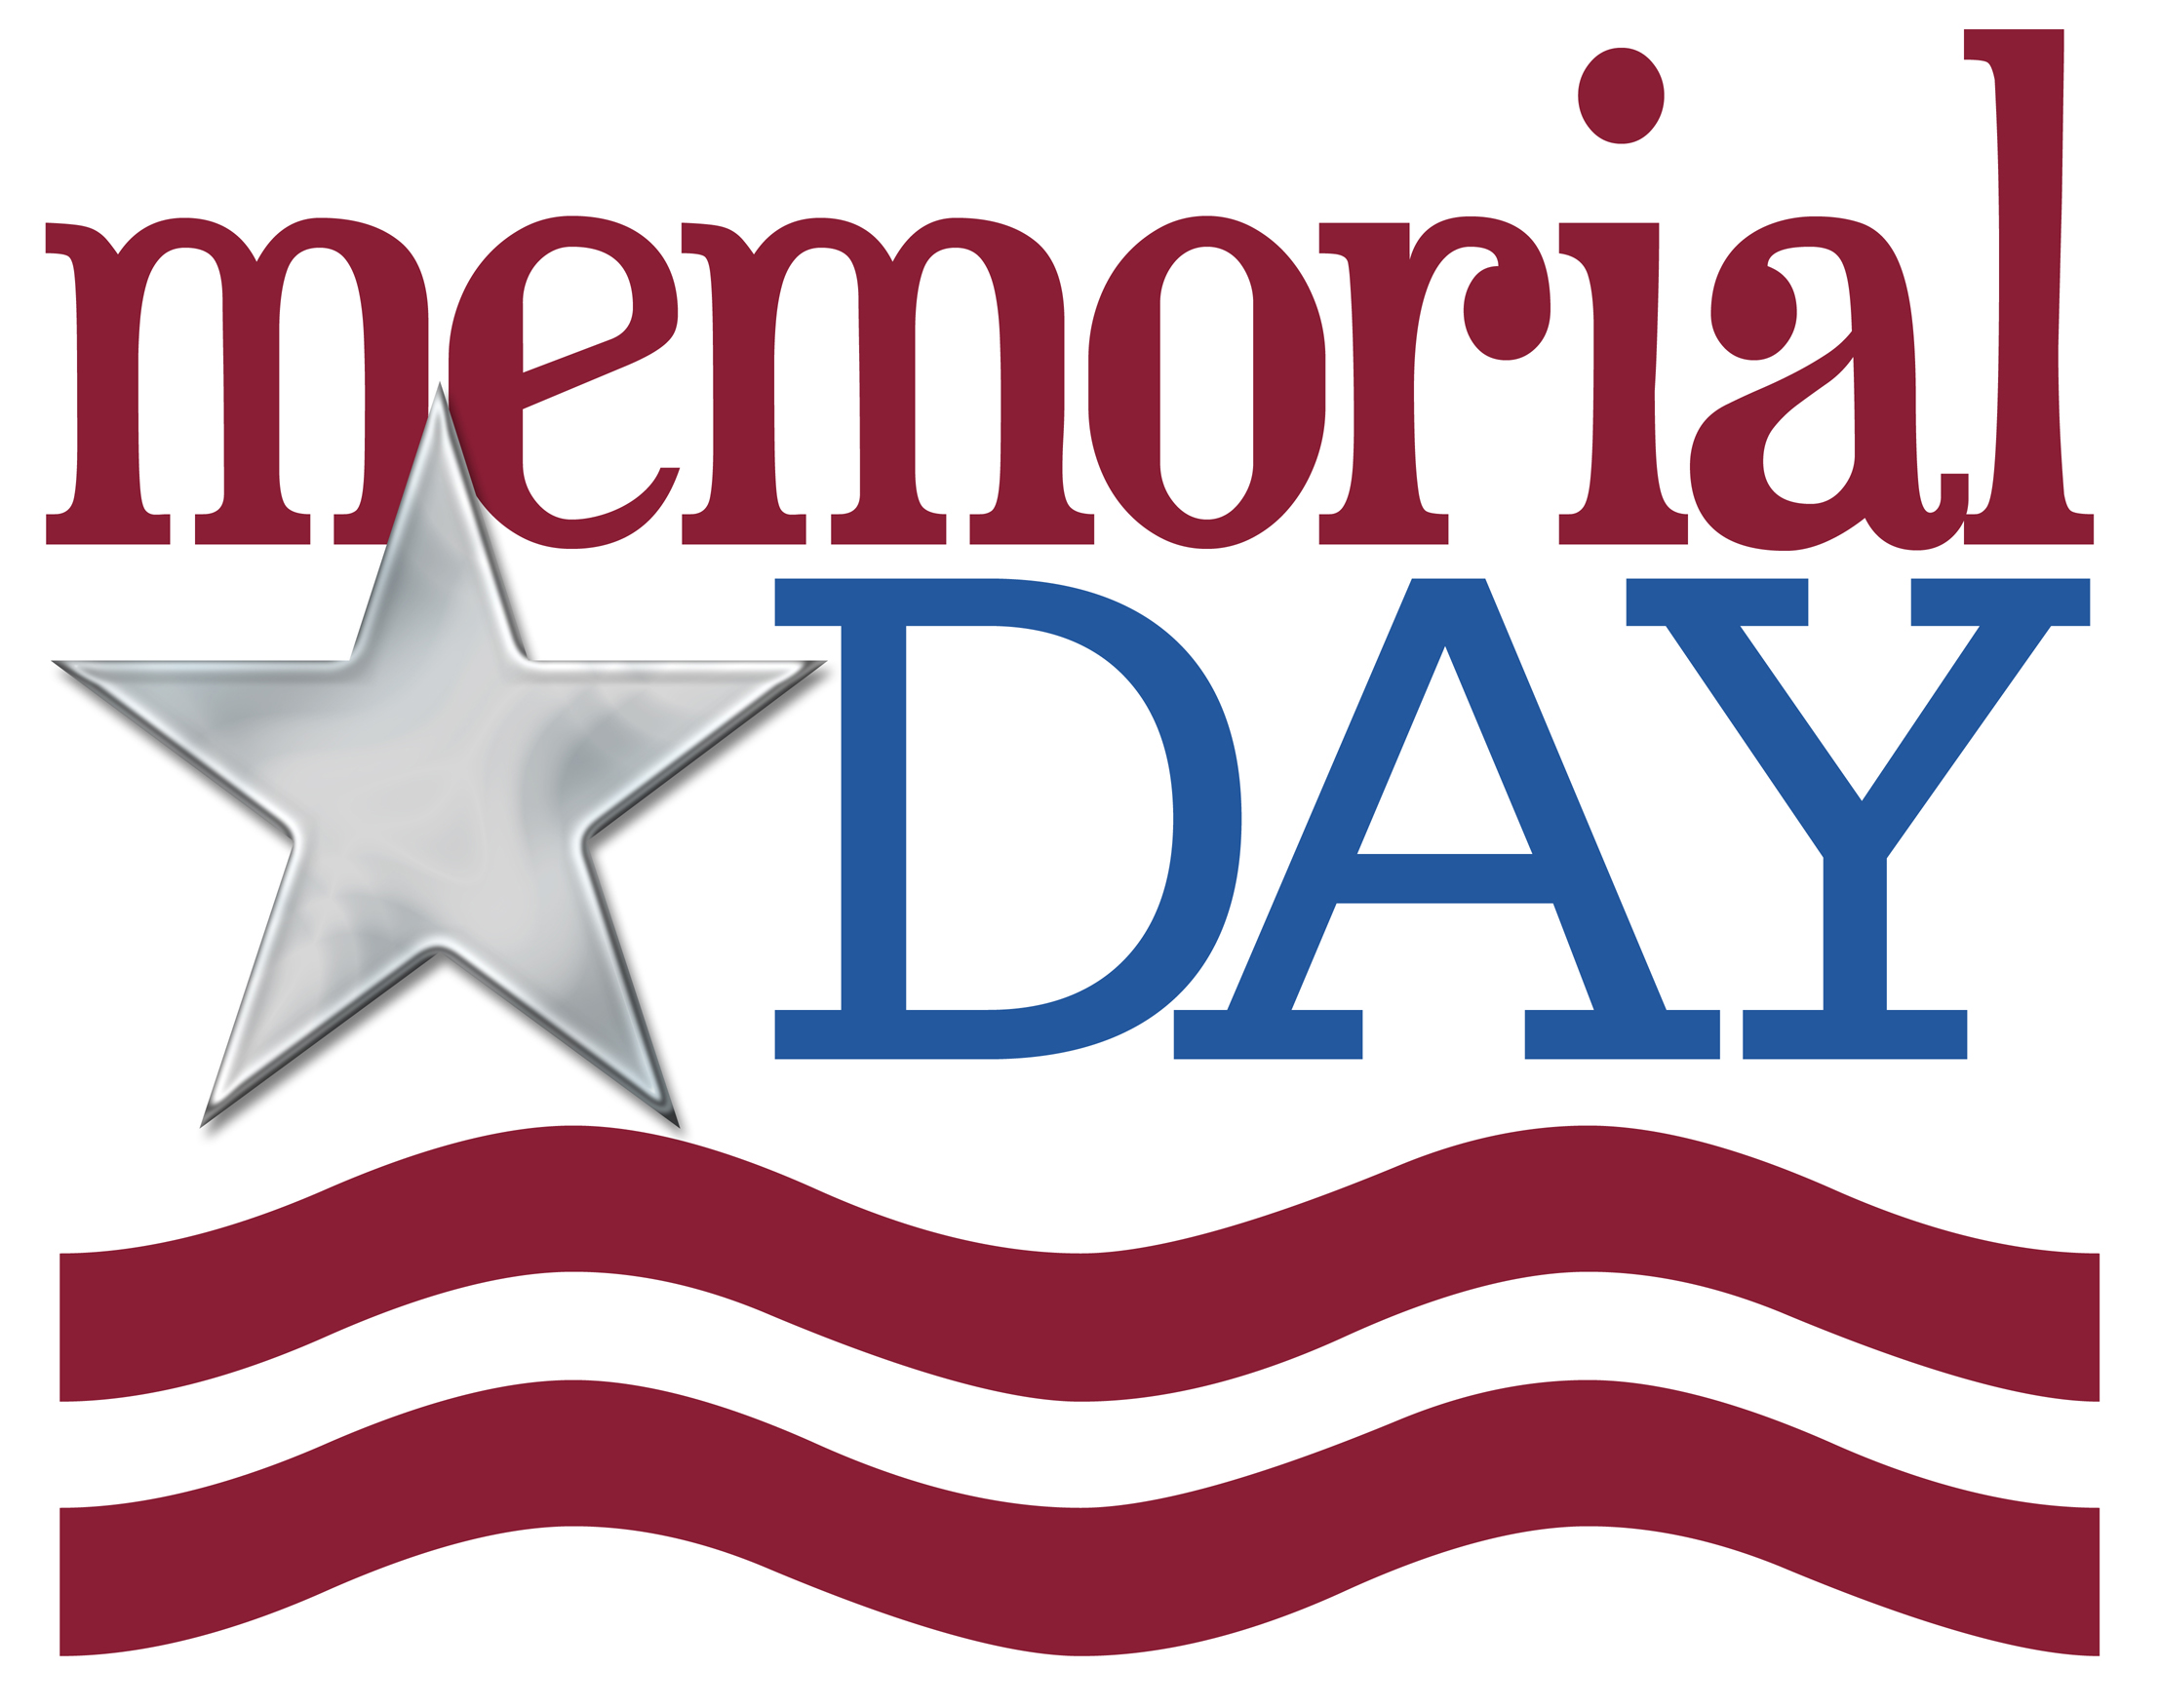 Happy MEMORIAL DAY Quotes, Images and Pictures 2015 - GizmoBase